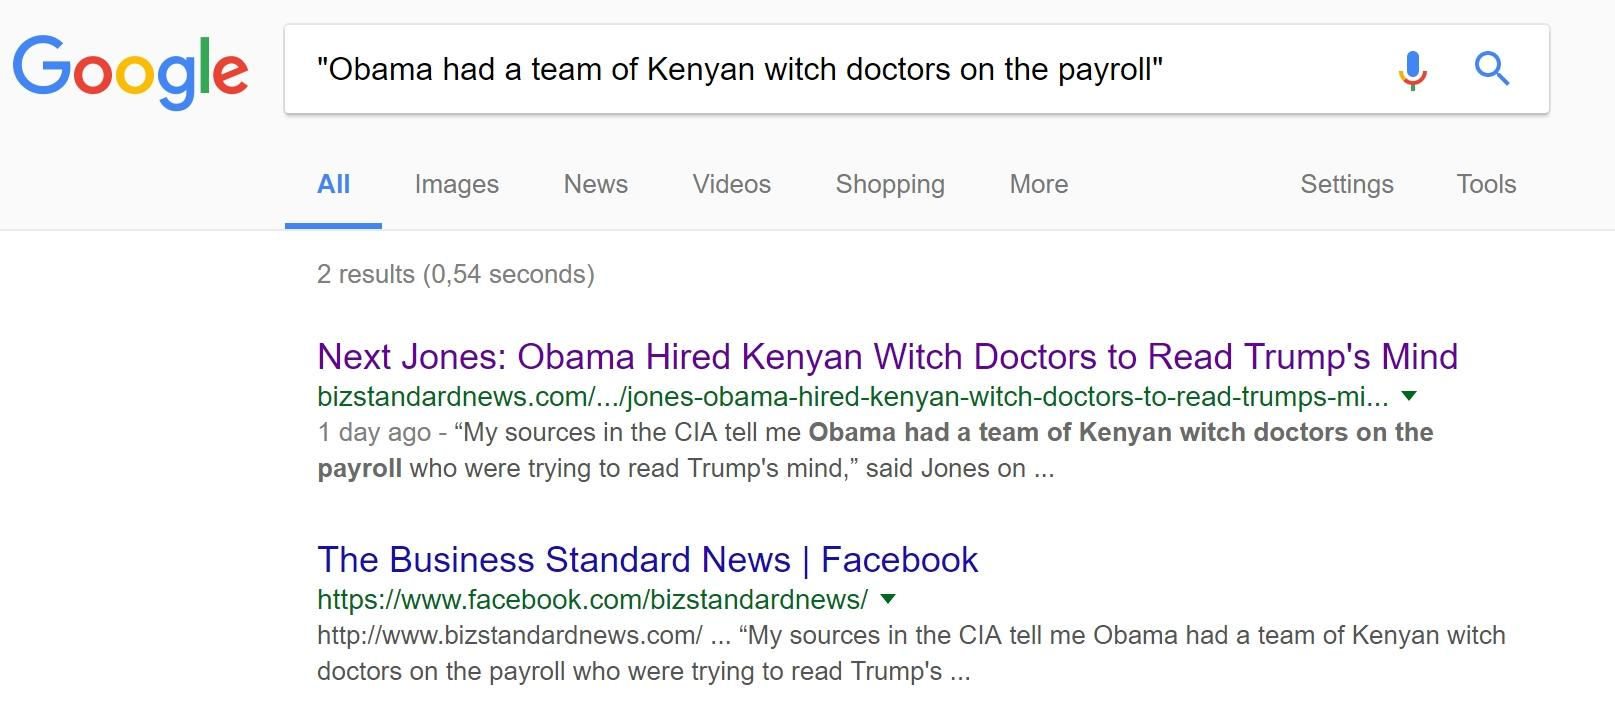 Fake News: Alex Jones Did NOT Say Obama Hired Kenyan Witch Doctors To Read Trump's Mind